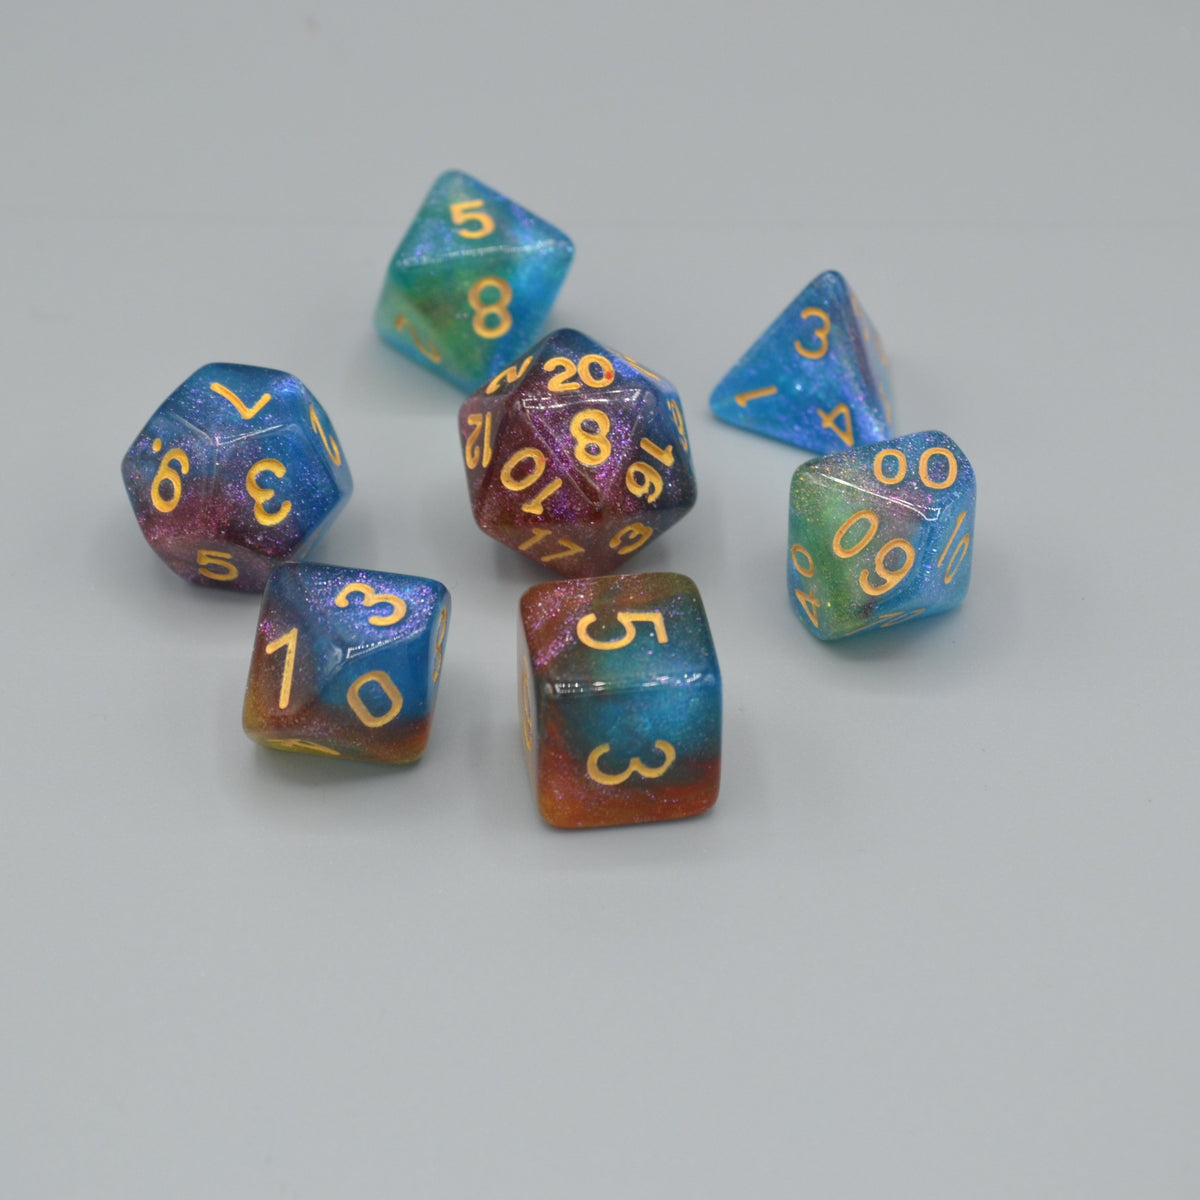 Set of 7 Dice Inspired by the Night Sky - Wildbot3d